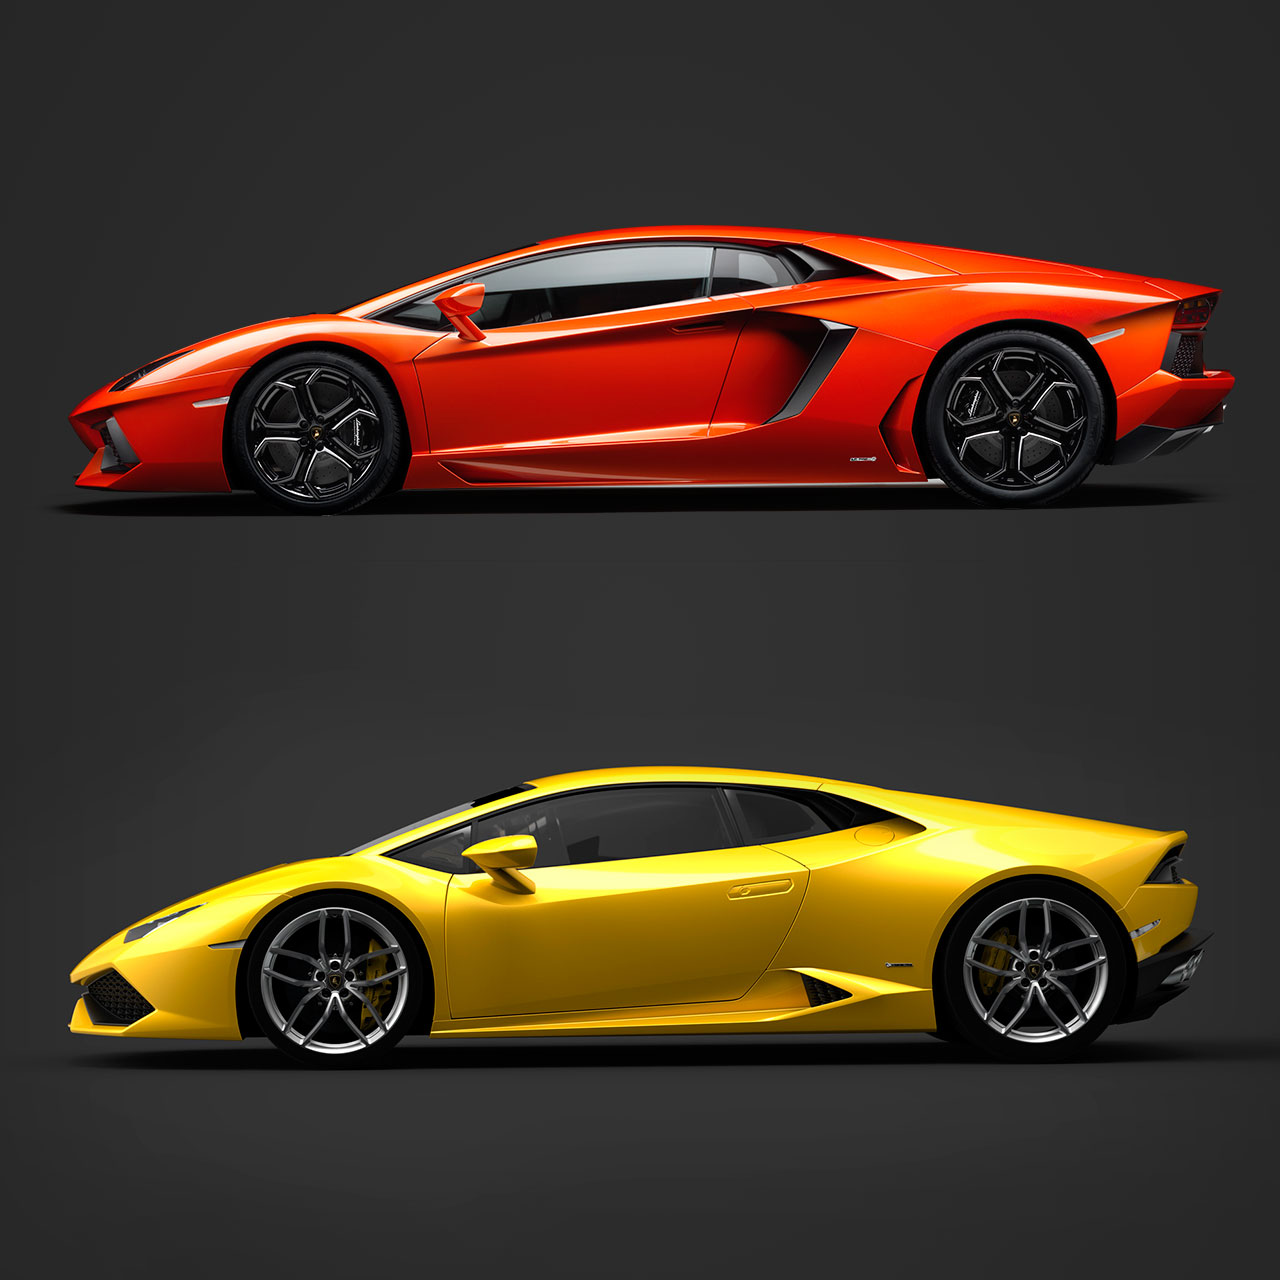 lamborghini aventador and huracan design comparison car. Black Bedroom Furniture Sets. Home Design Ideas